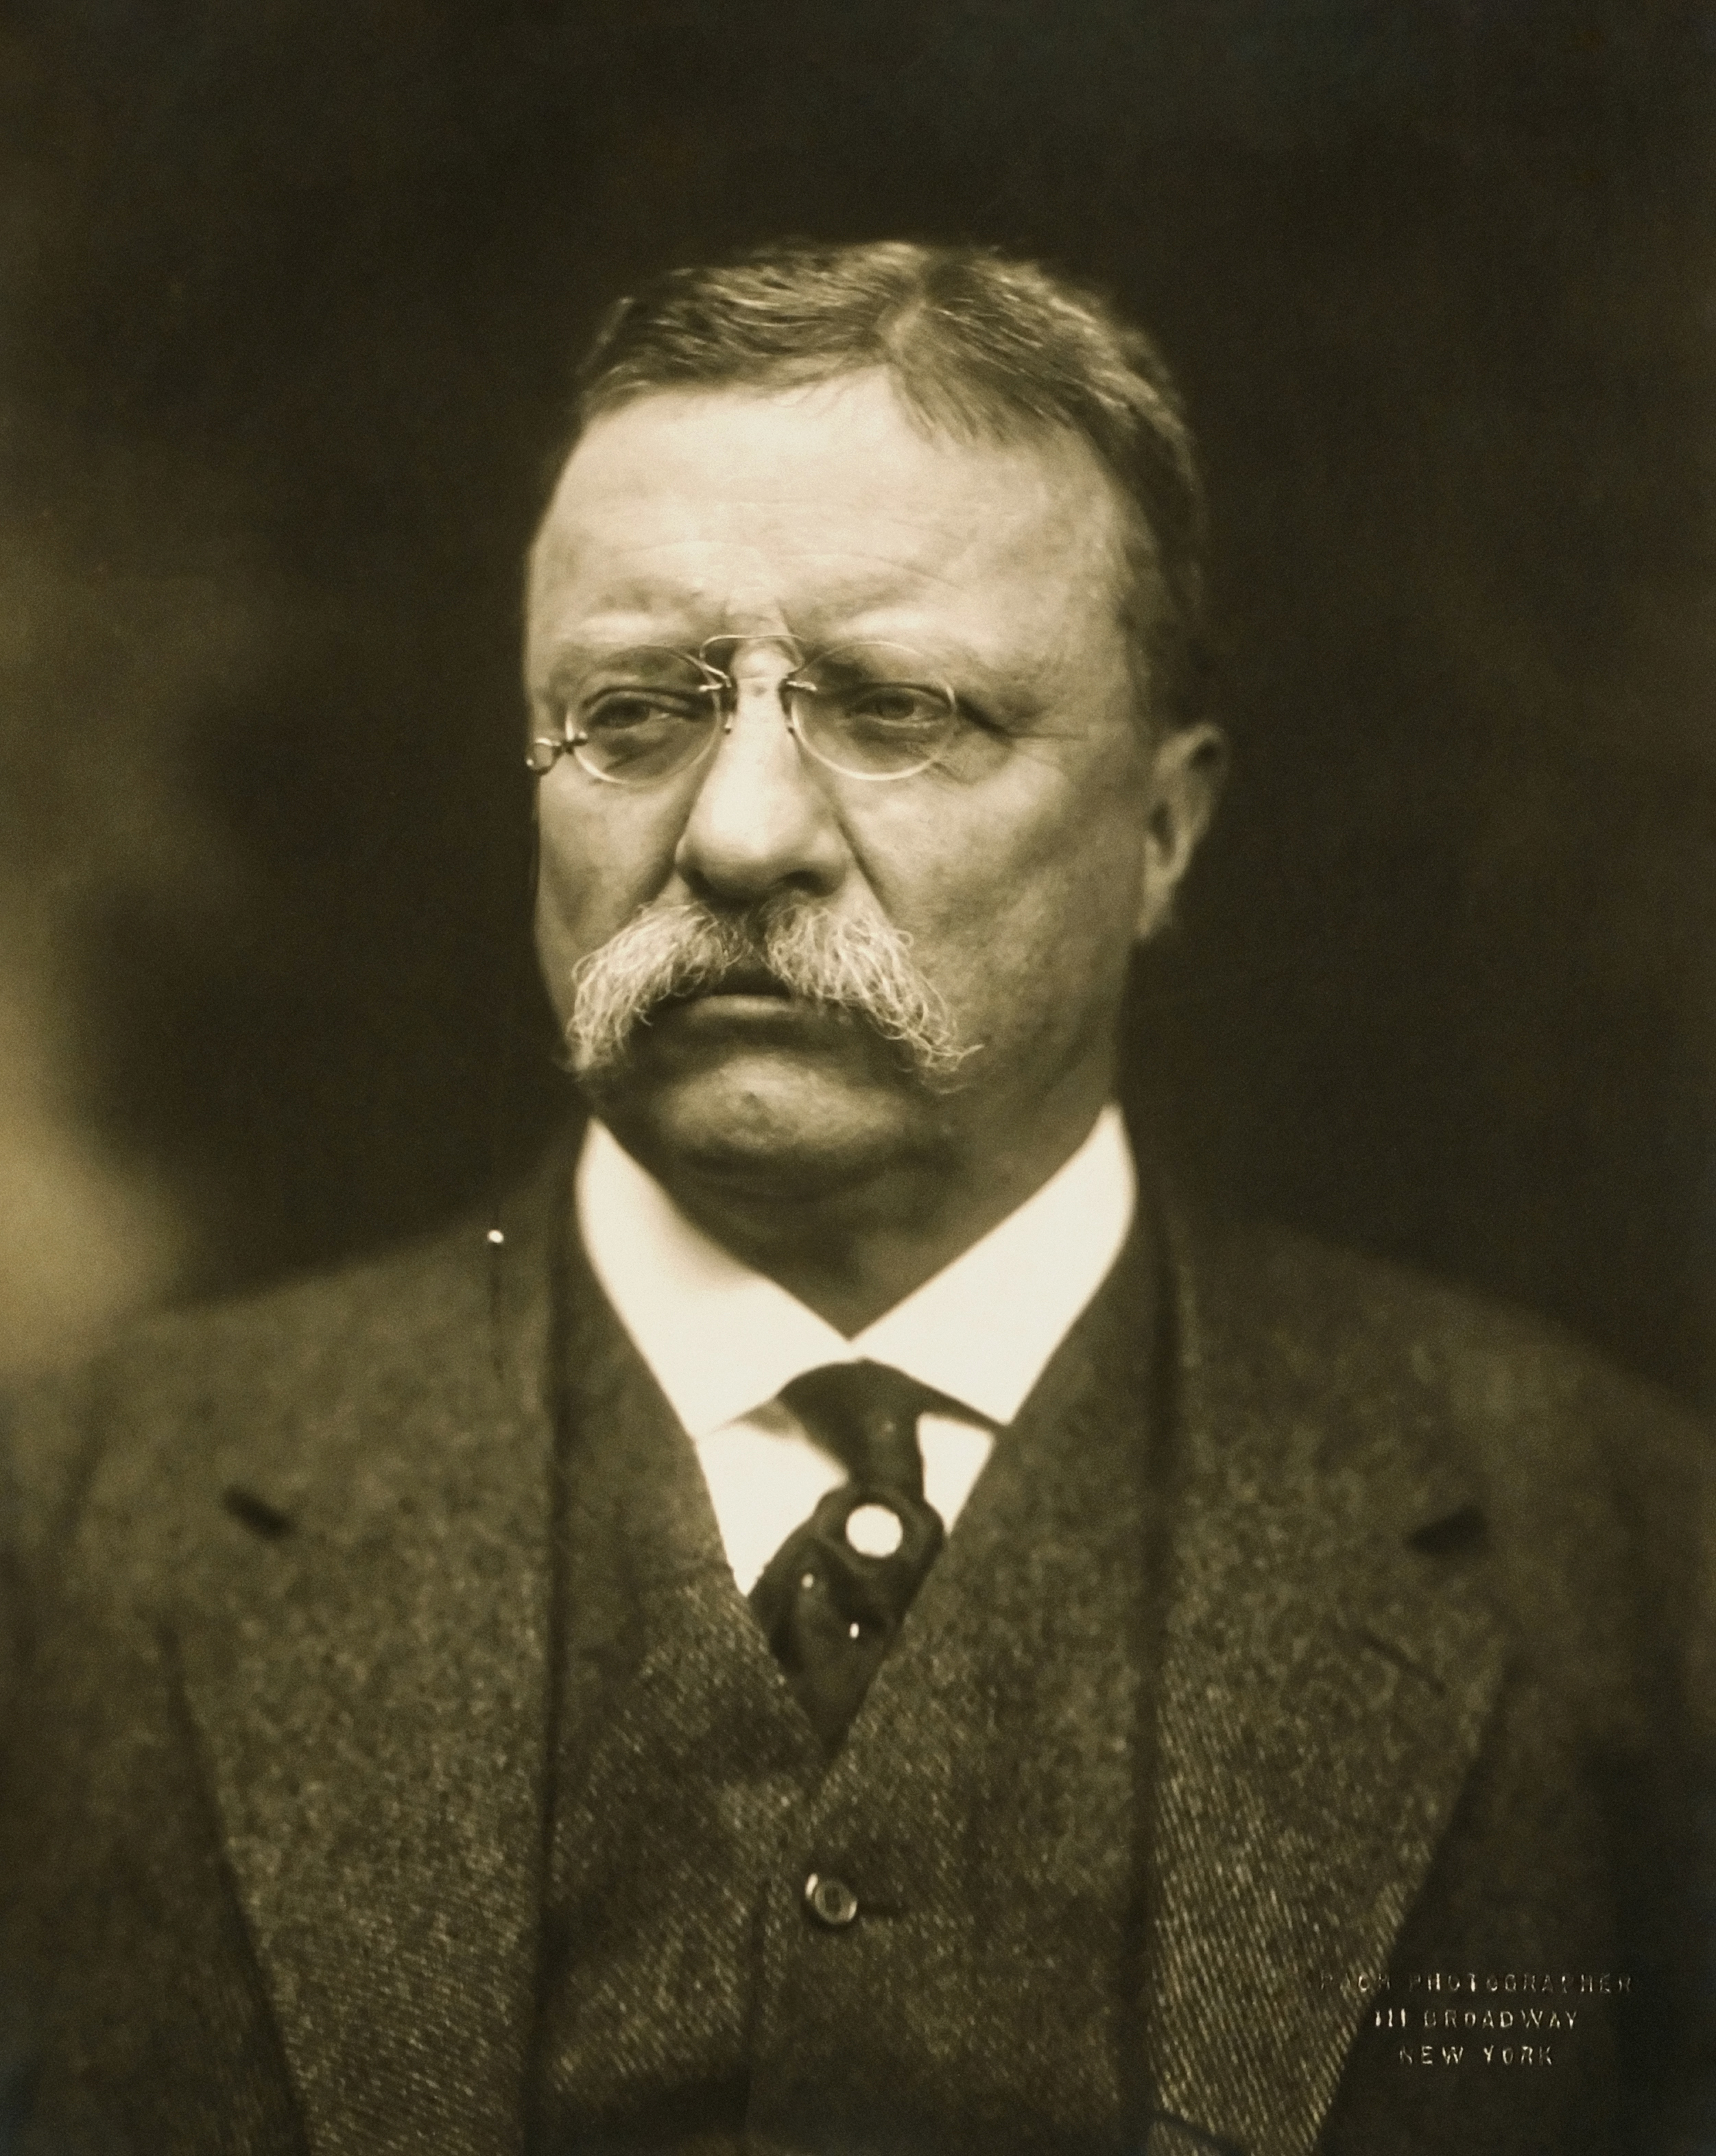 The Amazonian Expedition That Nearly Killed Theodore Roosevelt